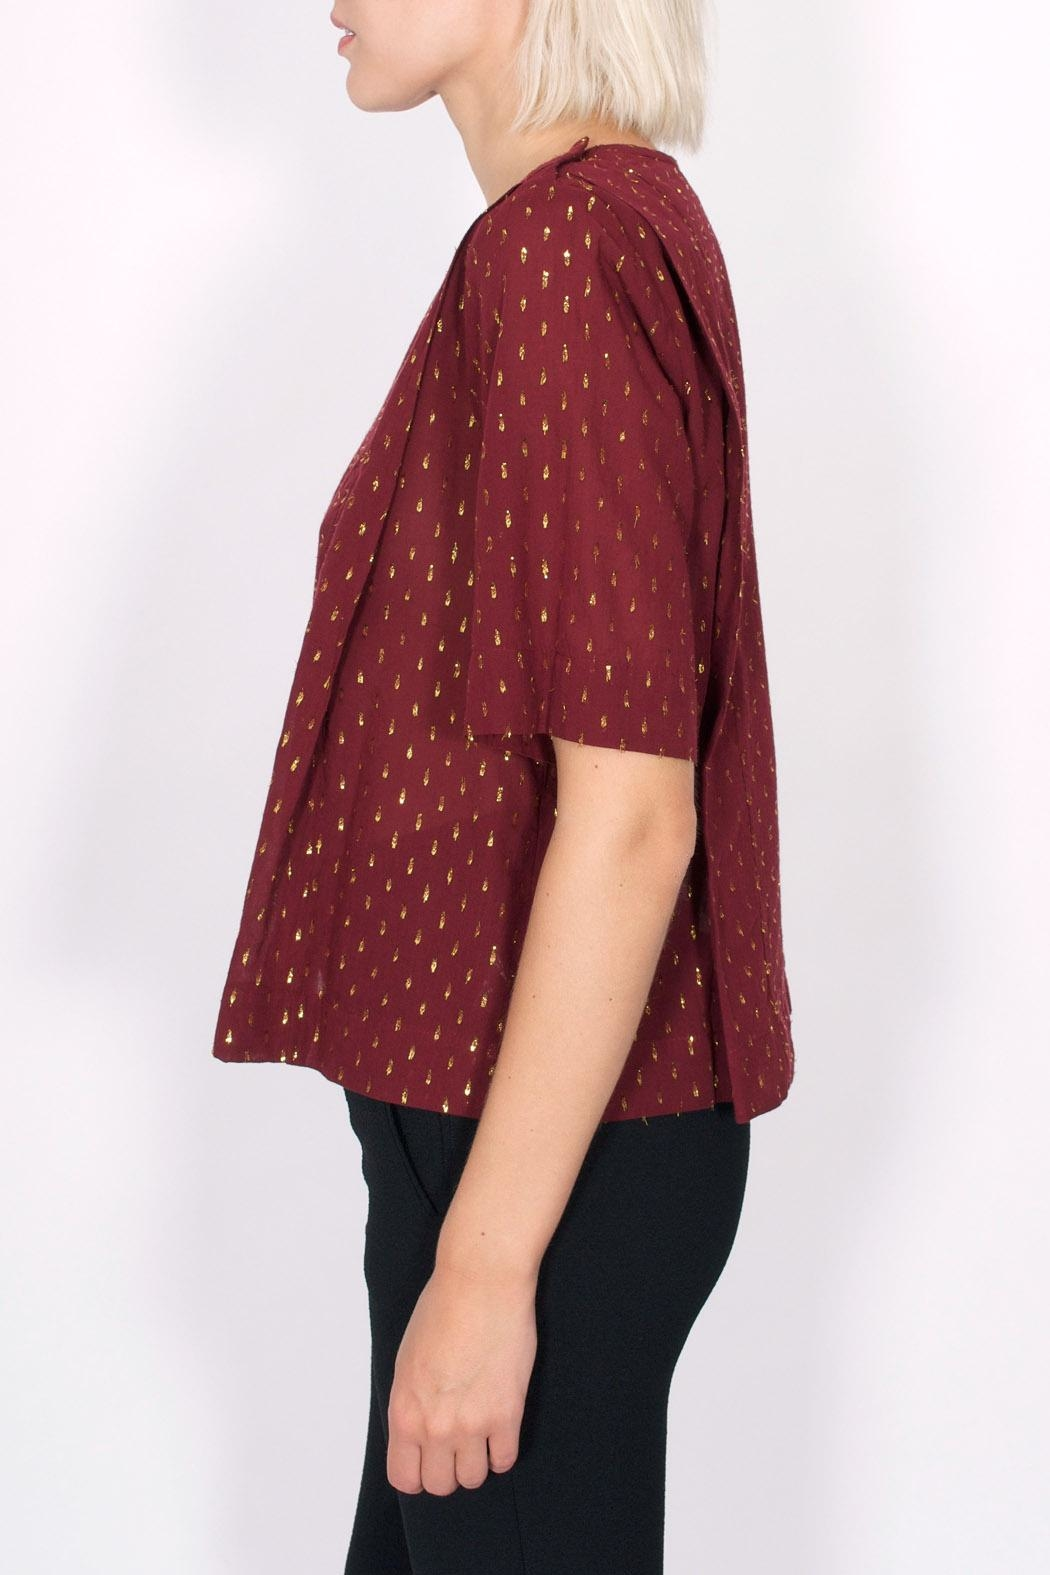 Maison Scotch Dobby Lurex Top - Front Full Image